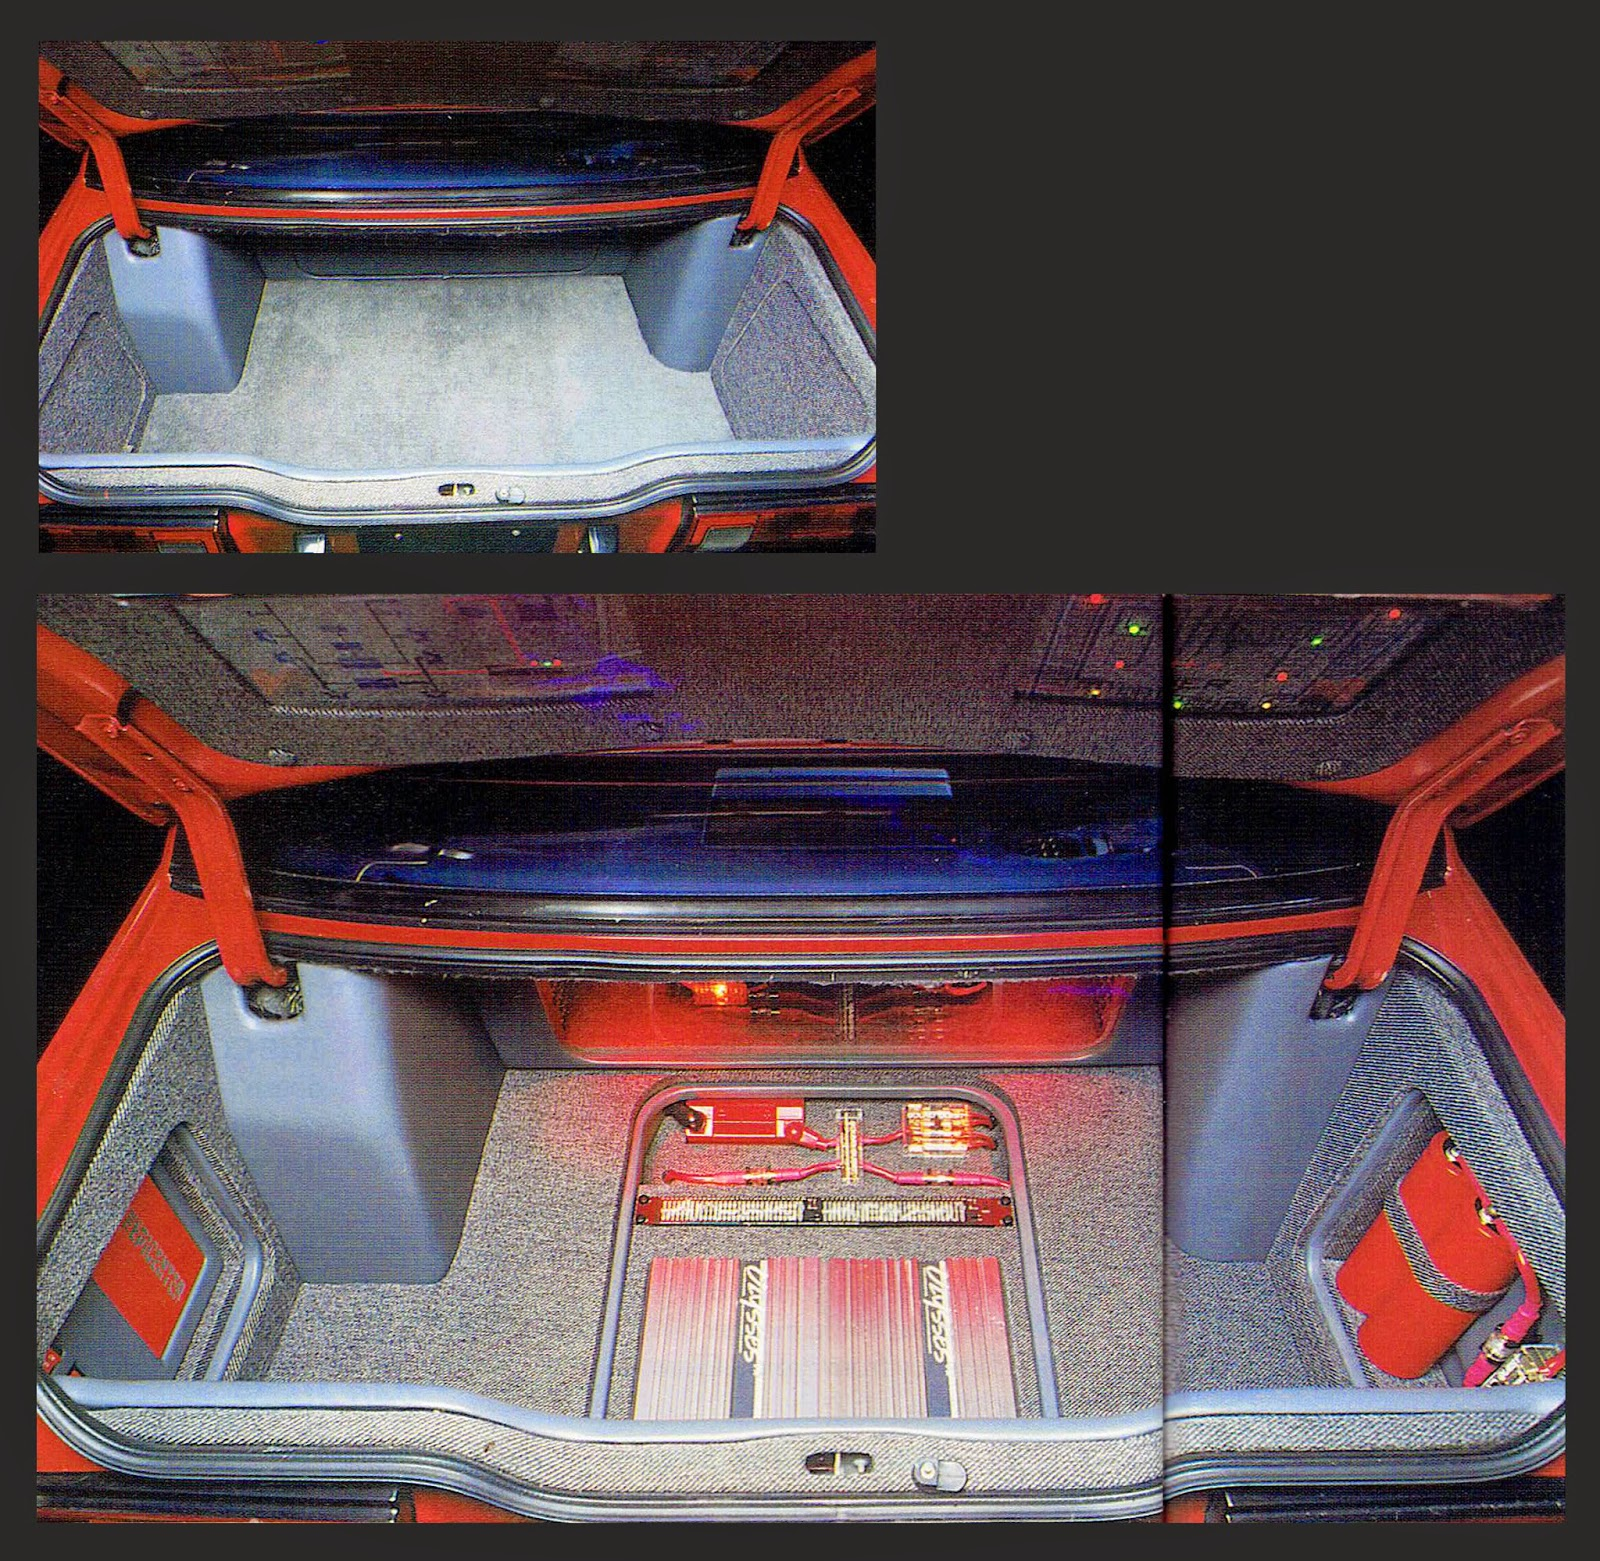 Composite image of Alberto A Lopez Sentra's trunk with and without stealth covers